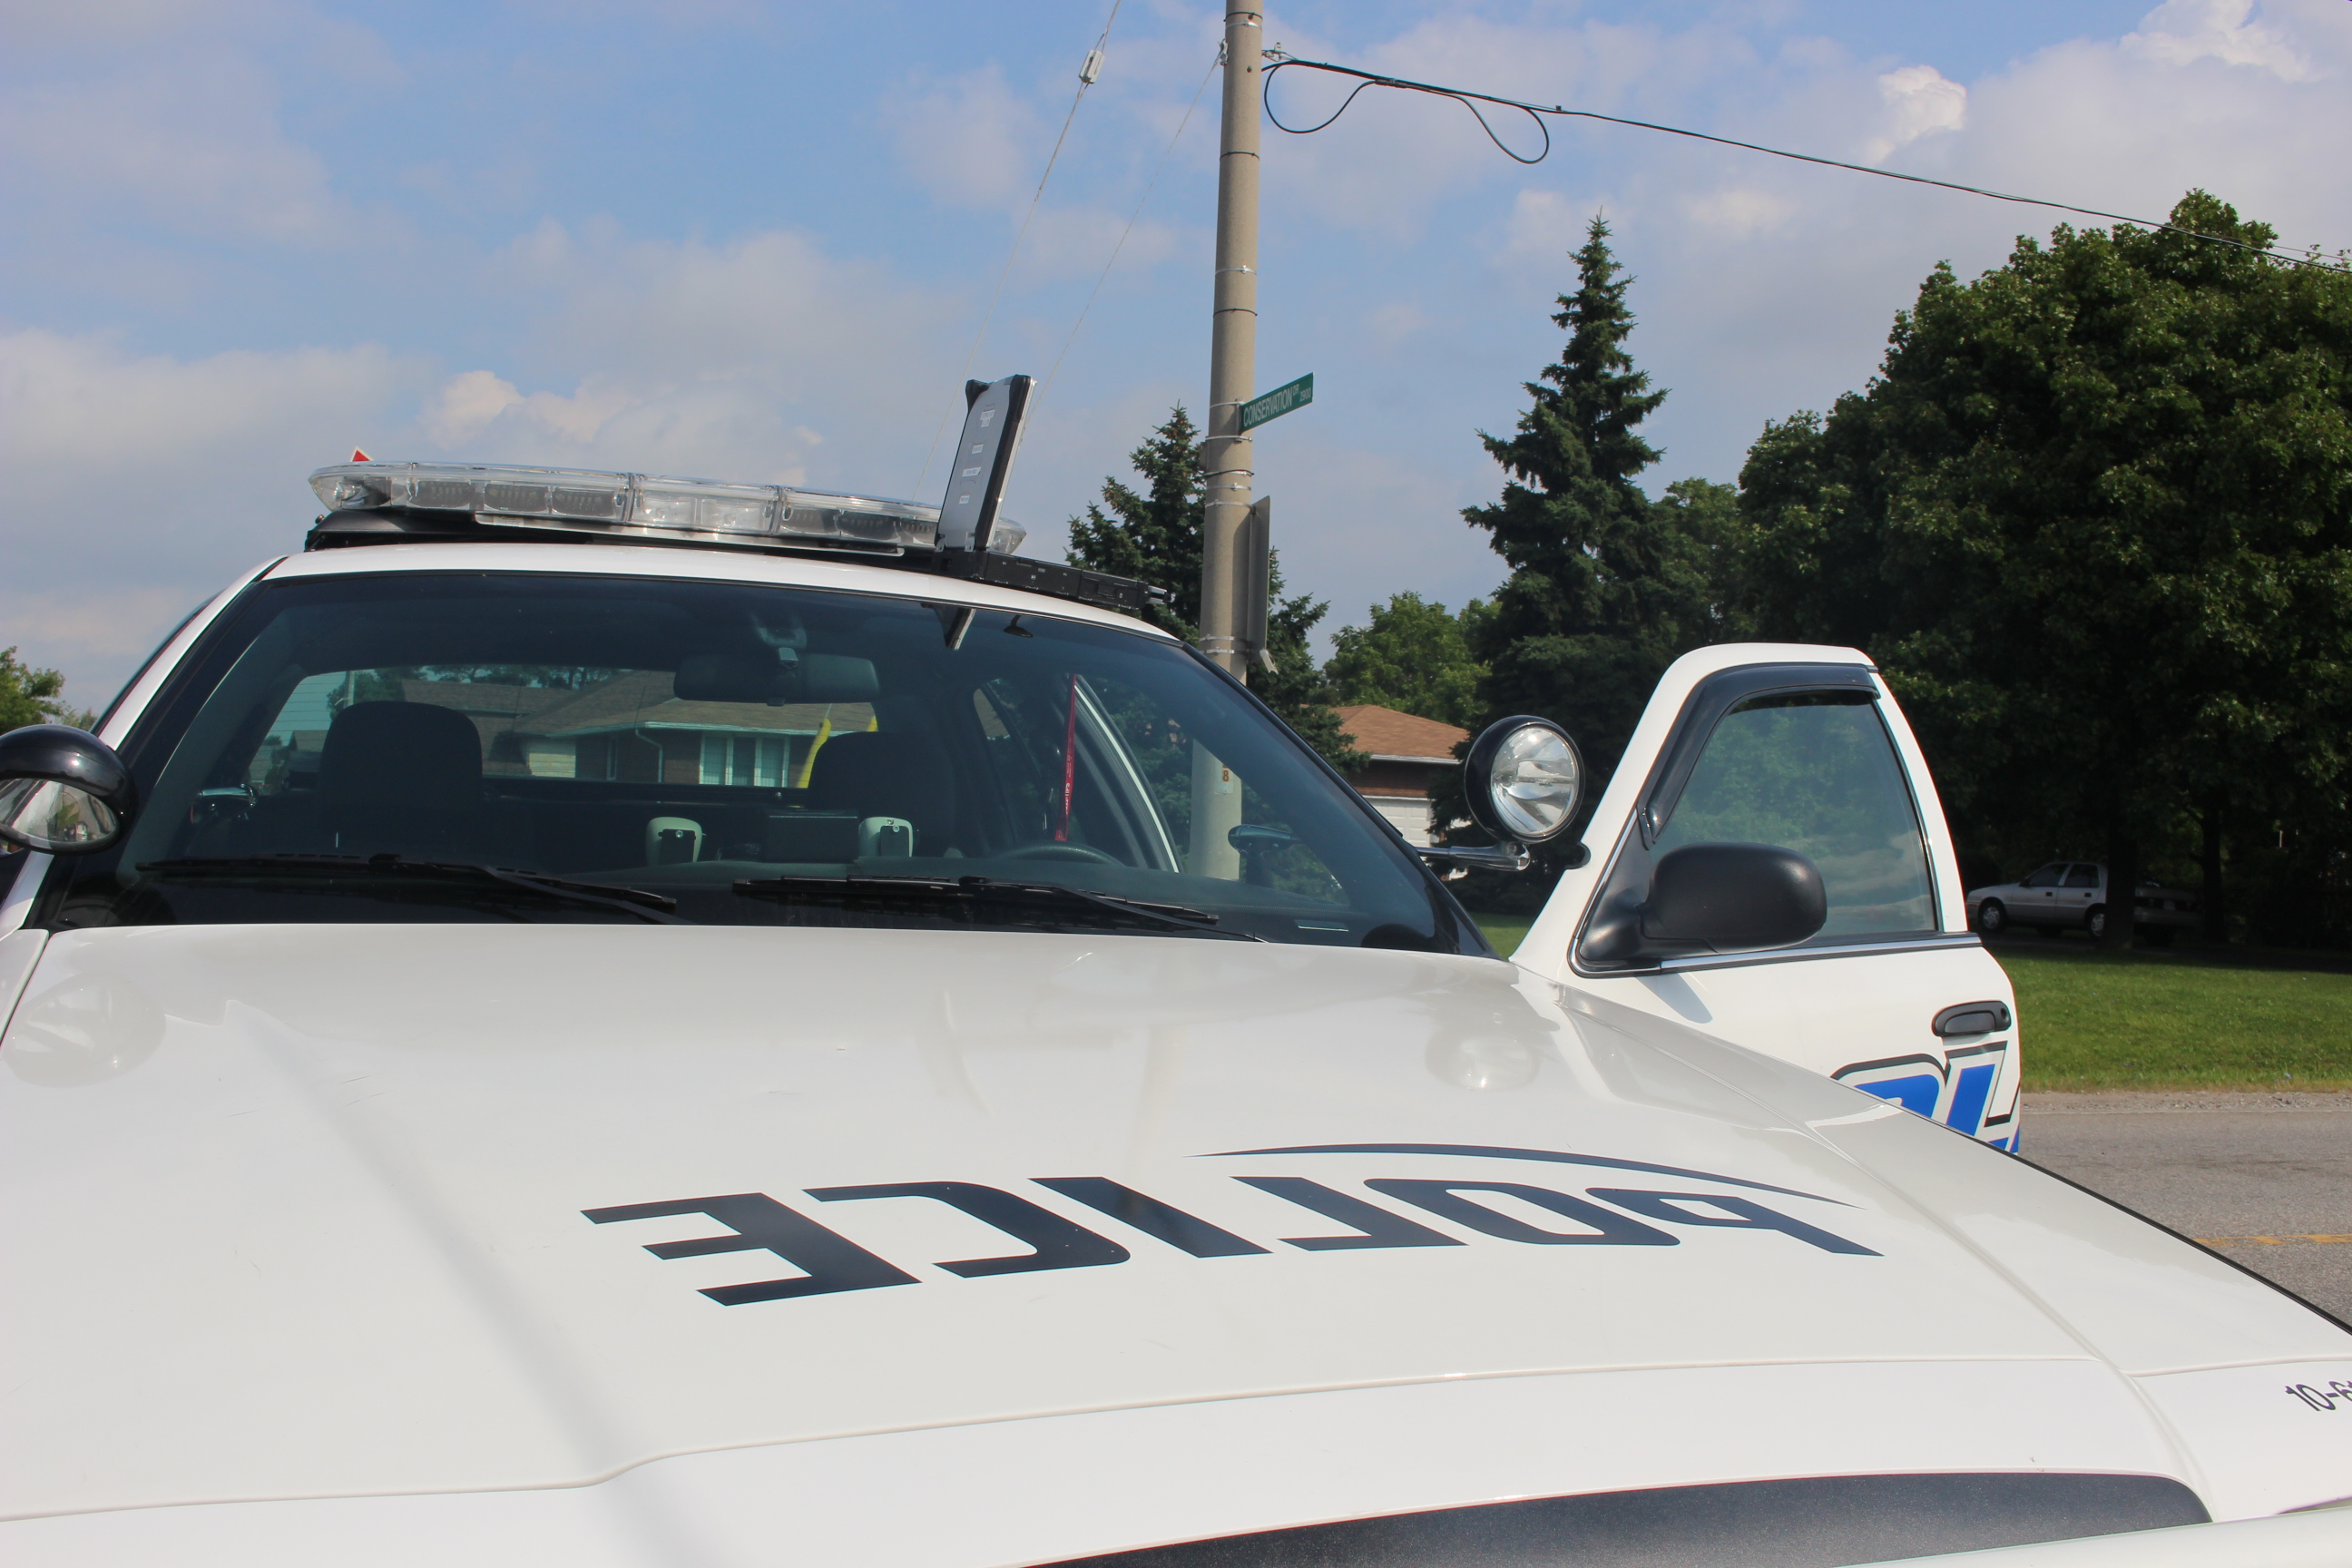 A Windsor police cruiser, September 1 2014. (Photo by Adelle Loiselle.)